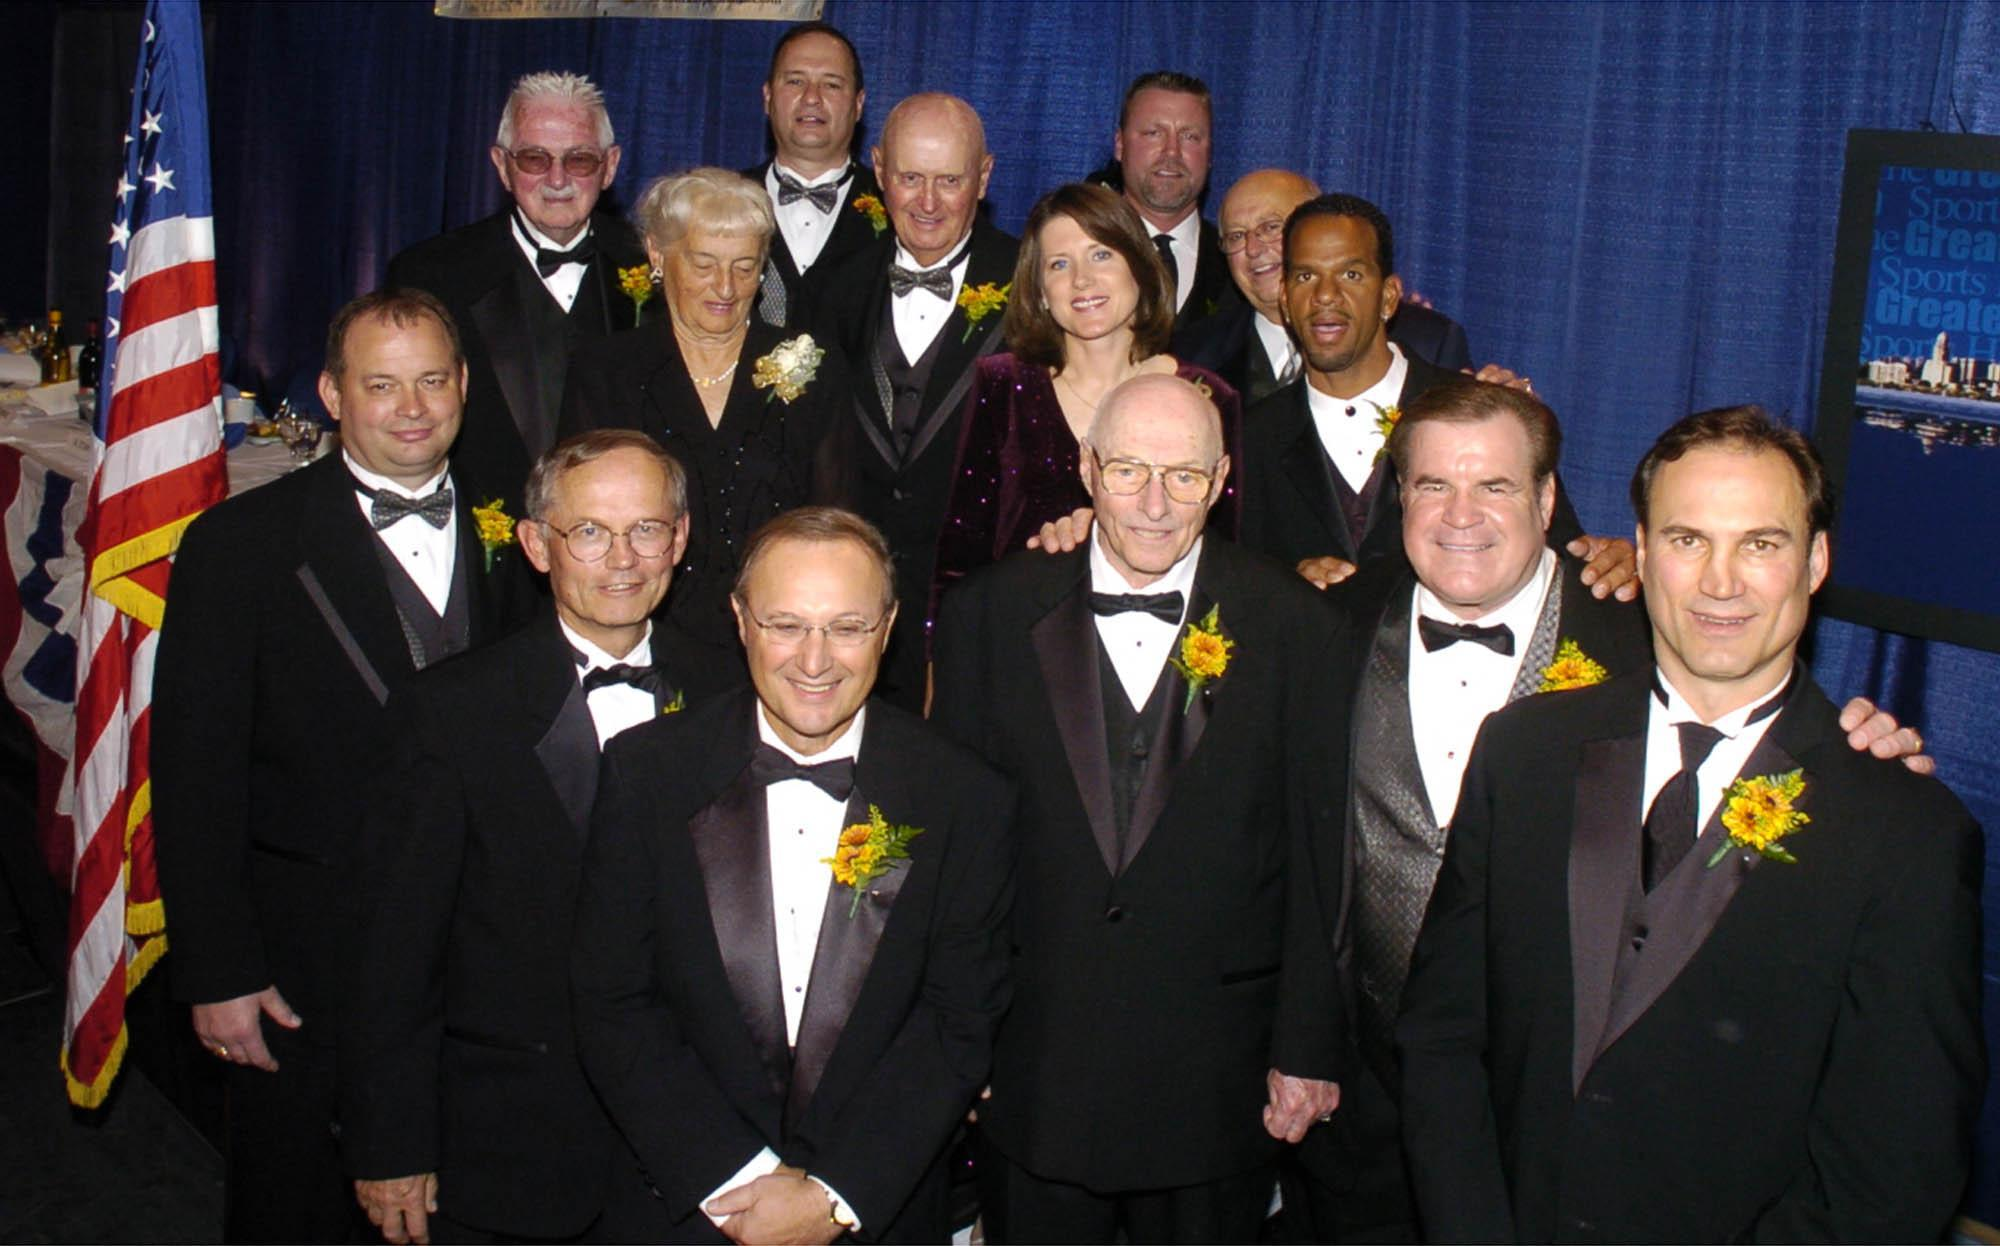 It was rare to see Bob Ivory (bottom row, middle) all dressed up as he was when he was inducted into the Greater Buffalo Sports Hall of Fame.